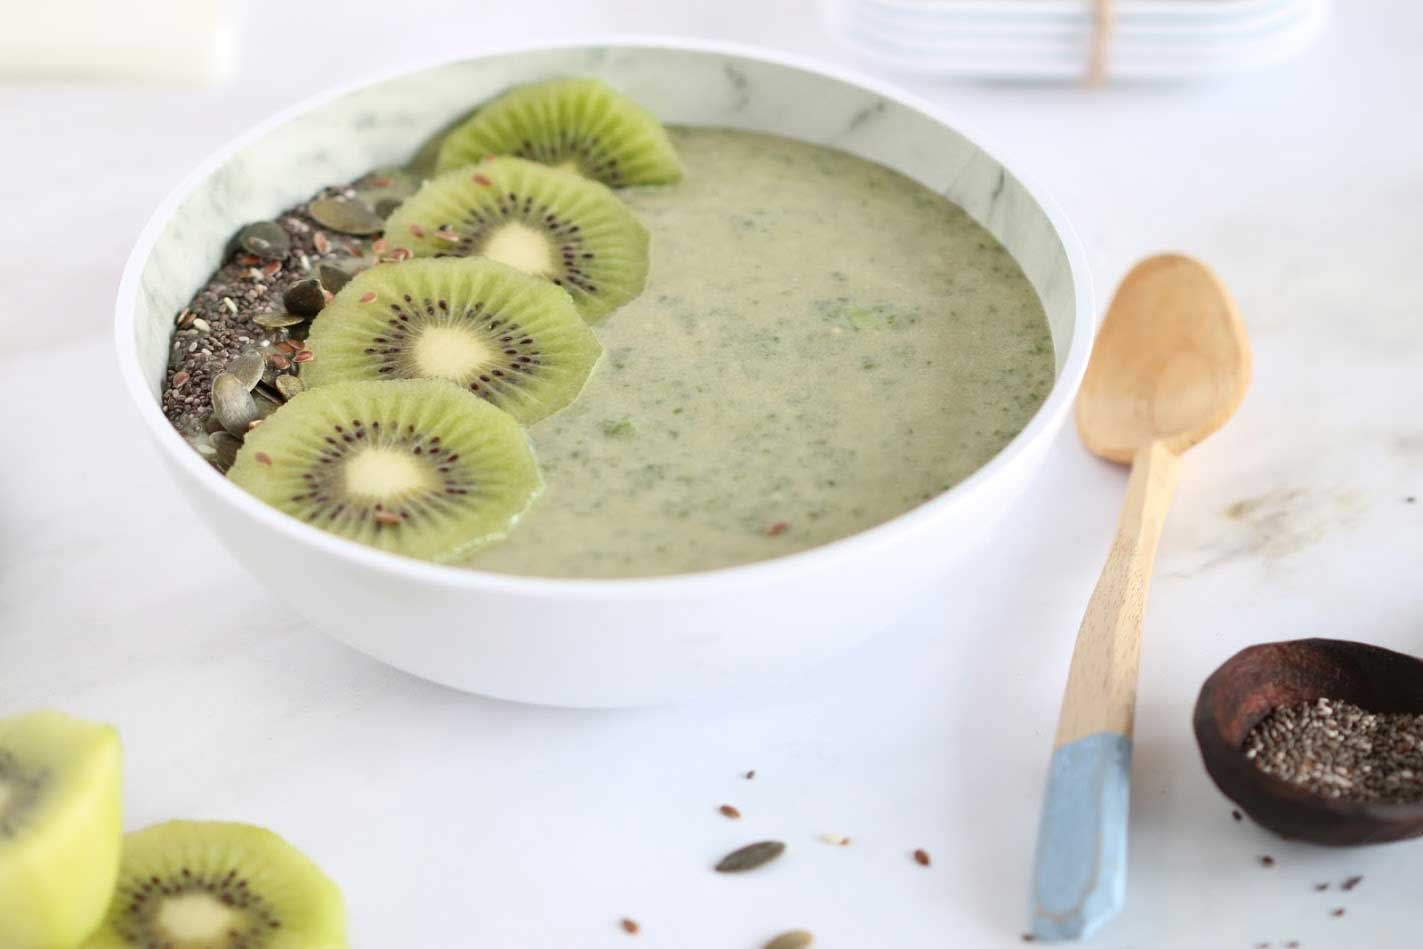 Green Smoothie Bowl - Healthy And Delicious!